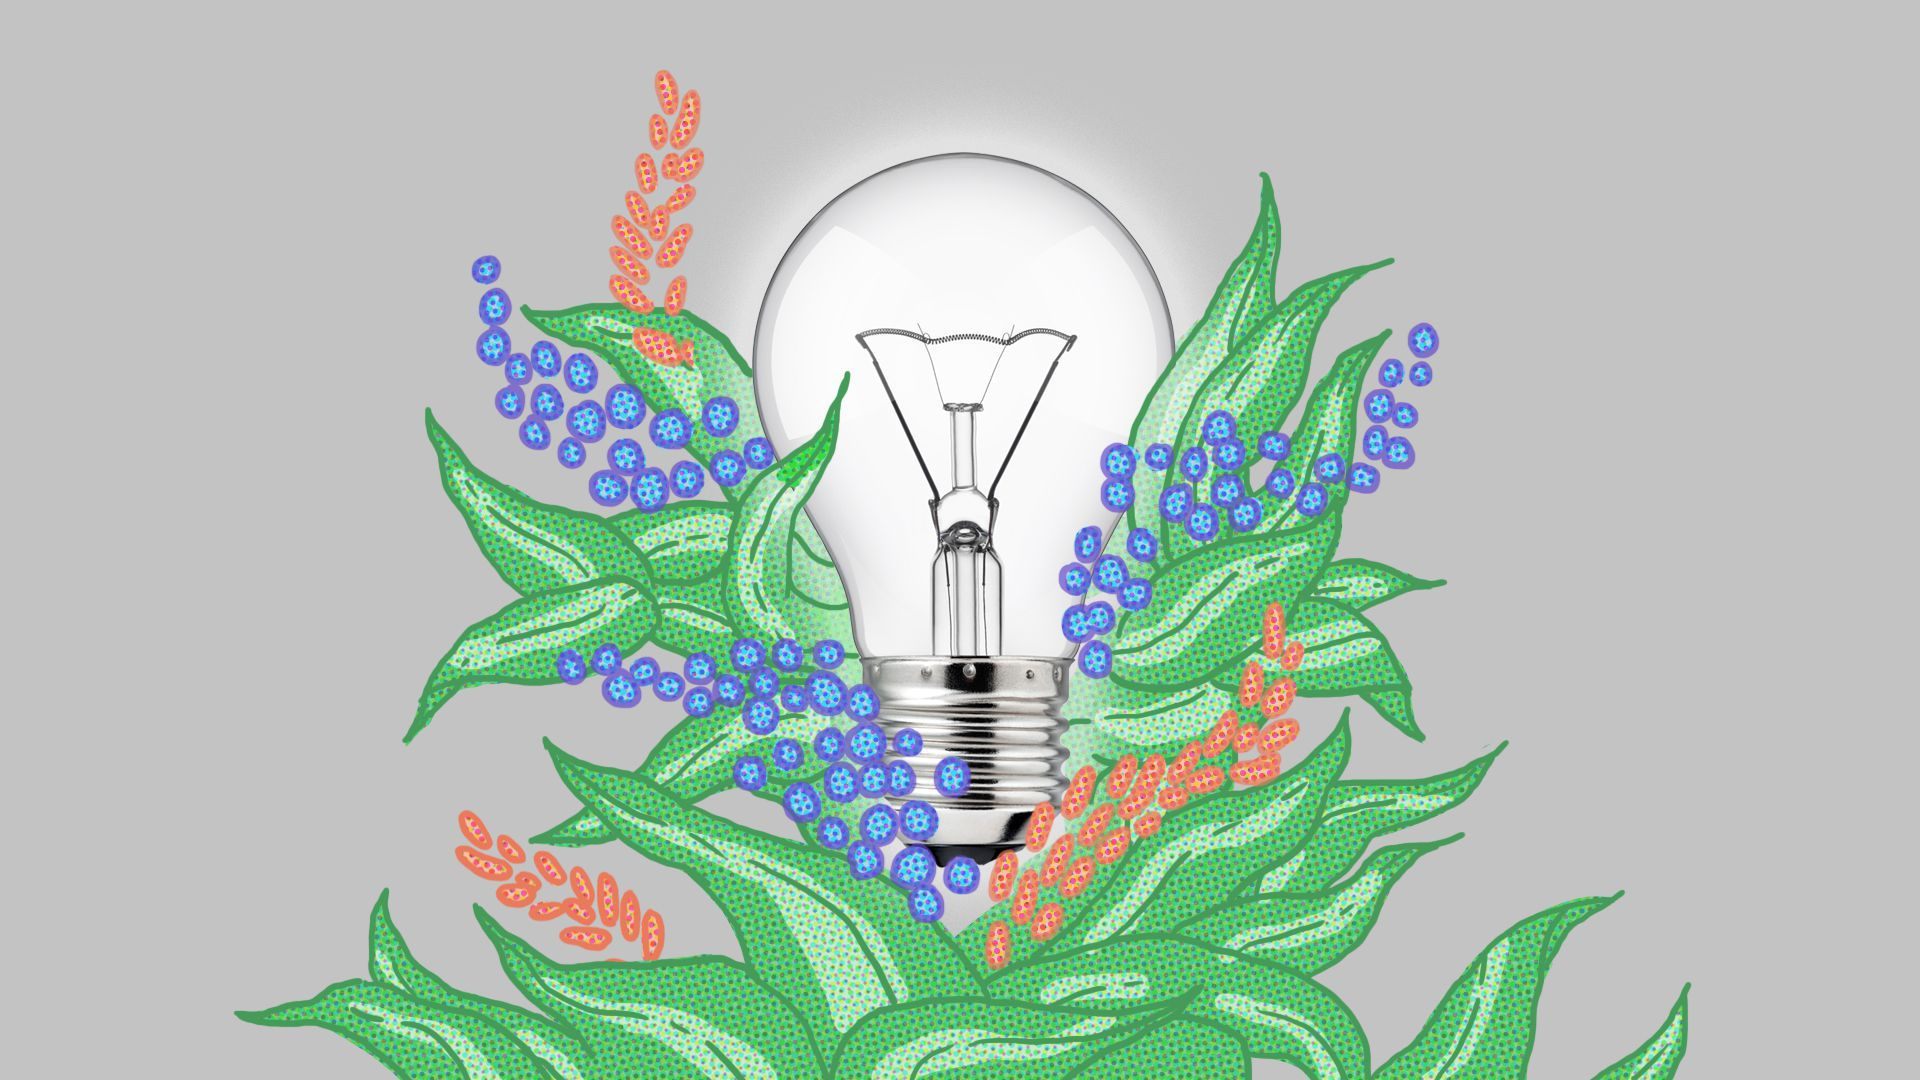 Image of lightbulb for piece on transformative energy tech